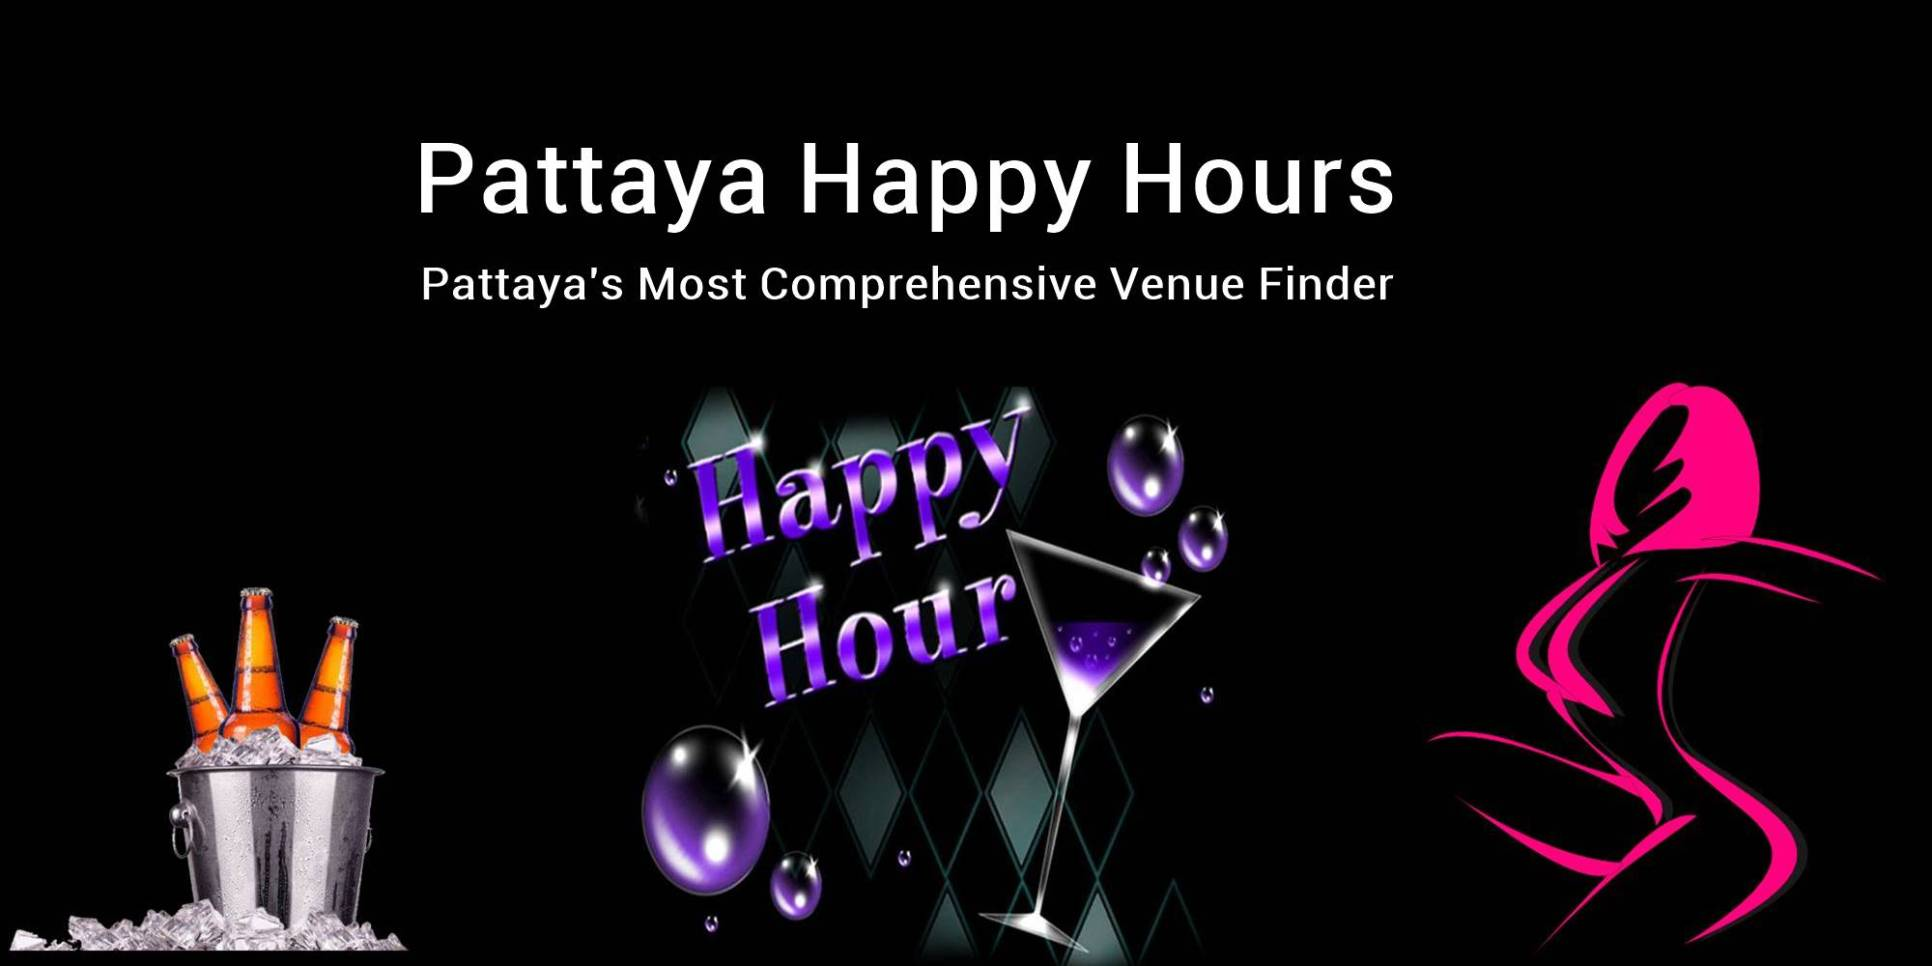 Pattaya Happy Hours